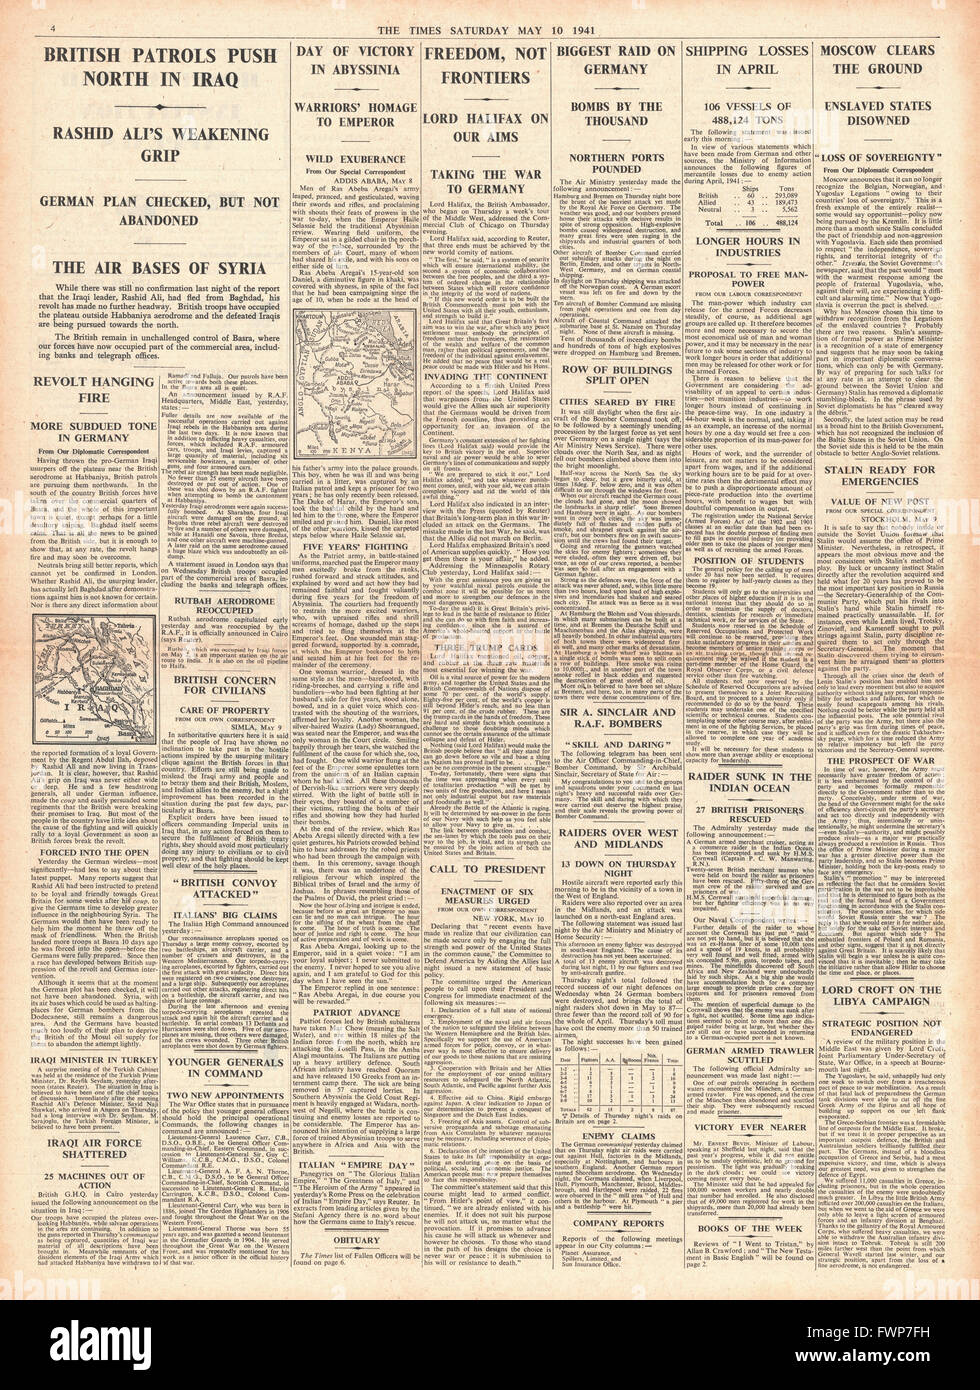 1941 page 4 The Times RAF bombing raids on Hamburg and Bremen and Emir Abdullah shot - Stock Image